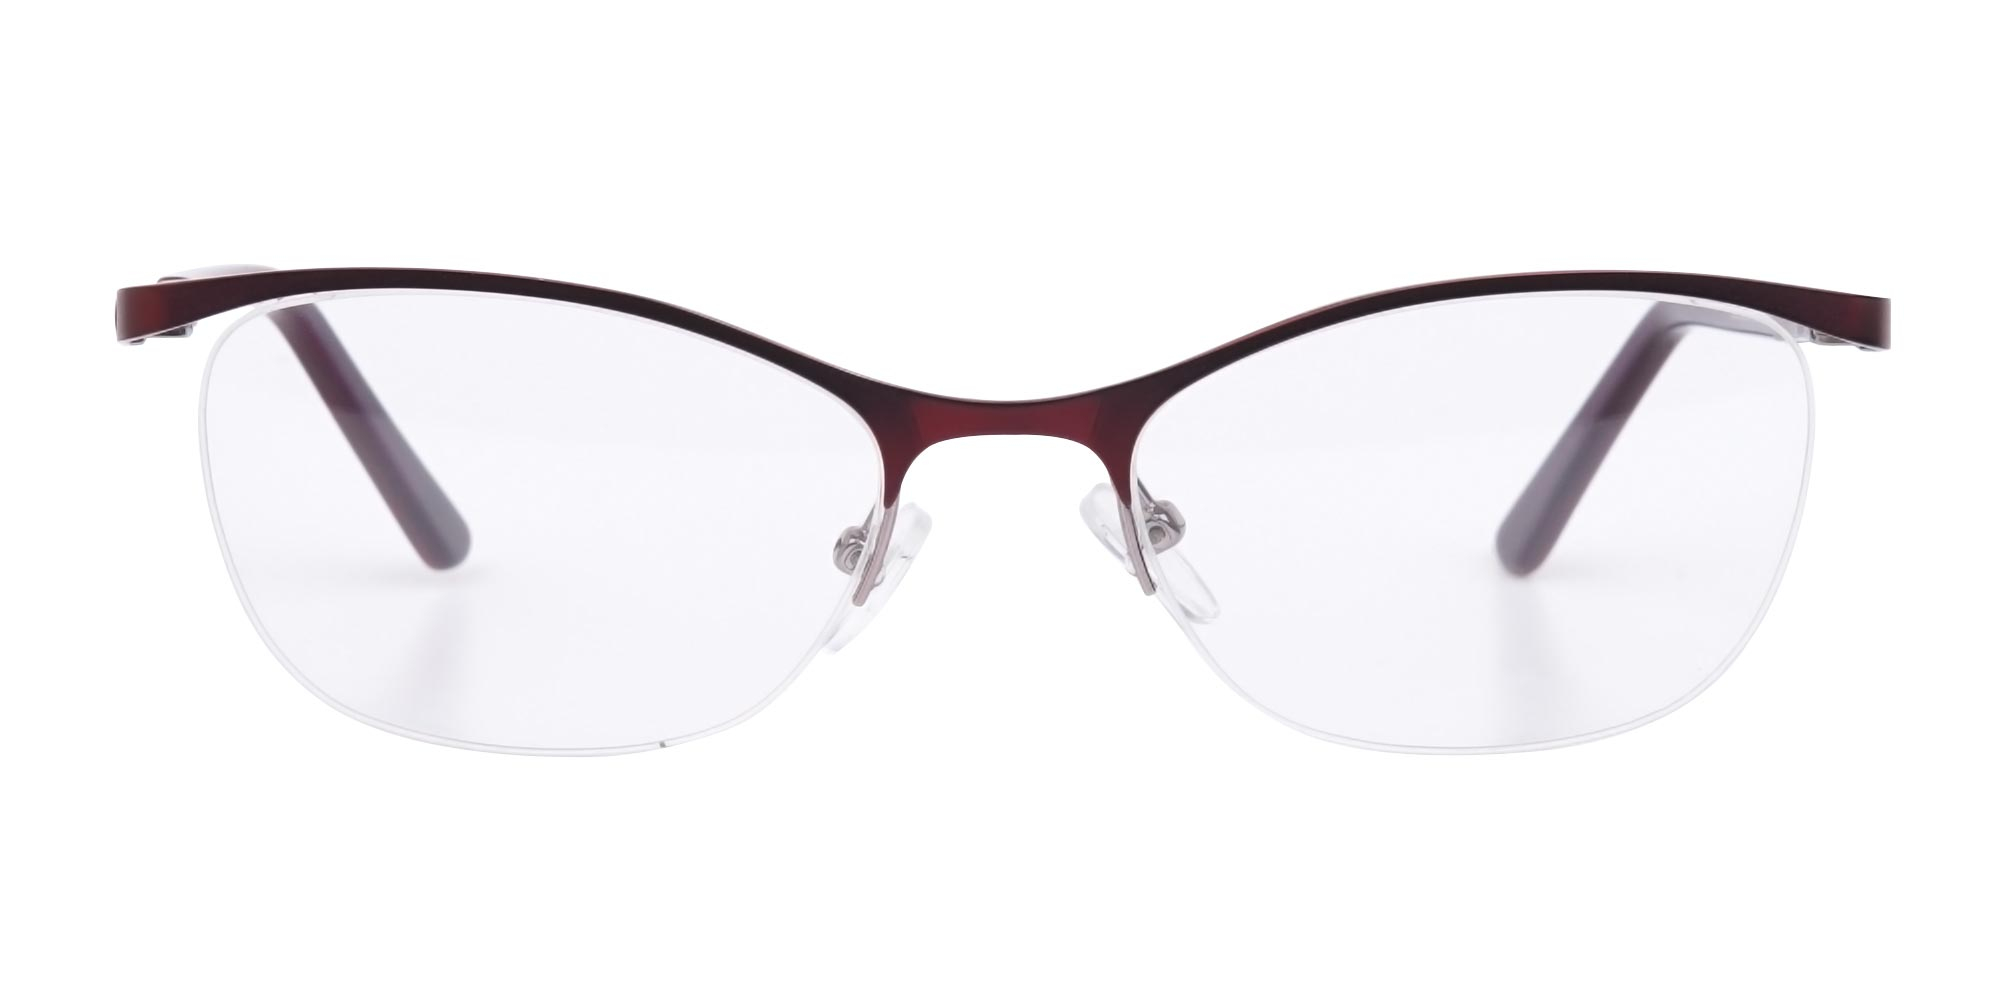 Oval Cat-Eye Glasses in Burgundy Red and Metal